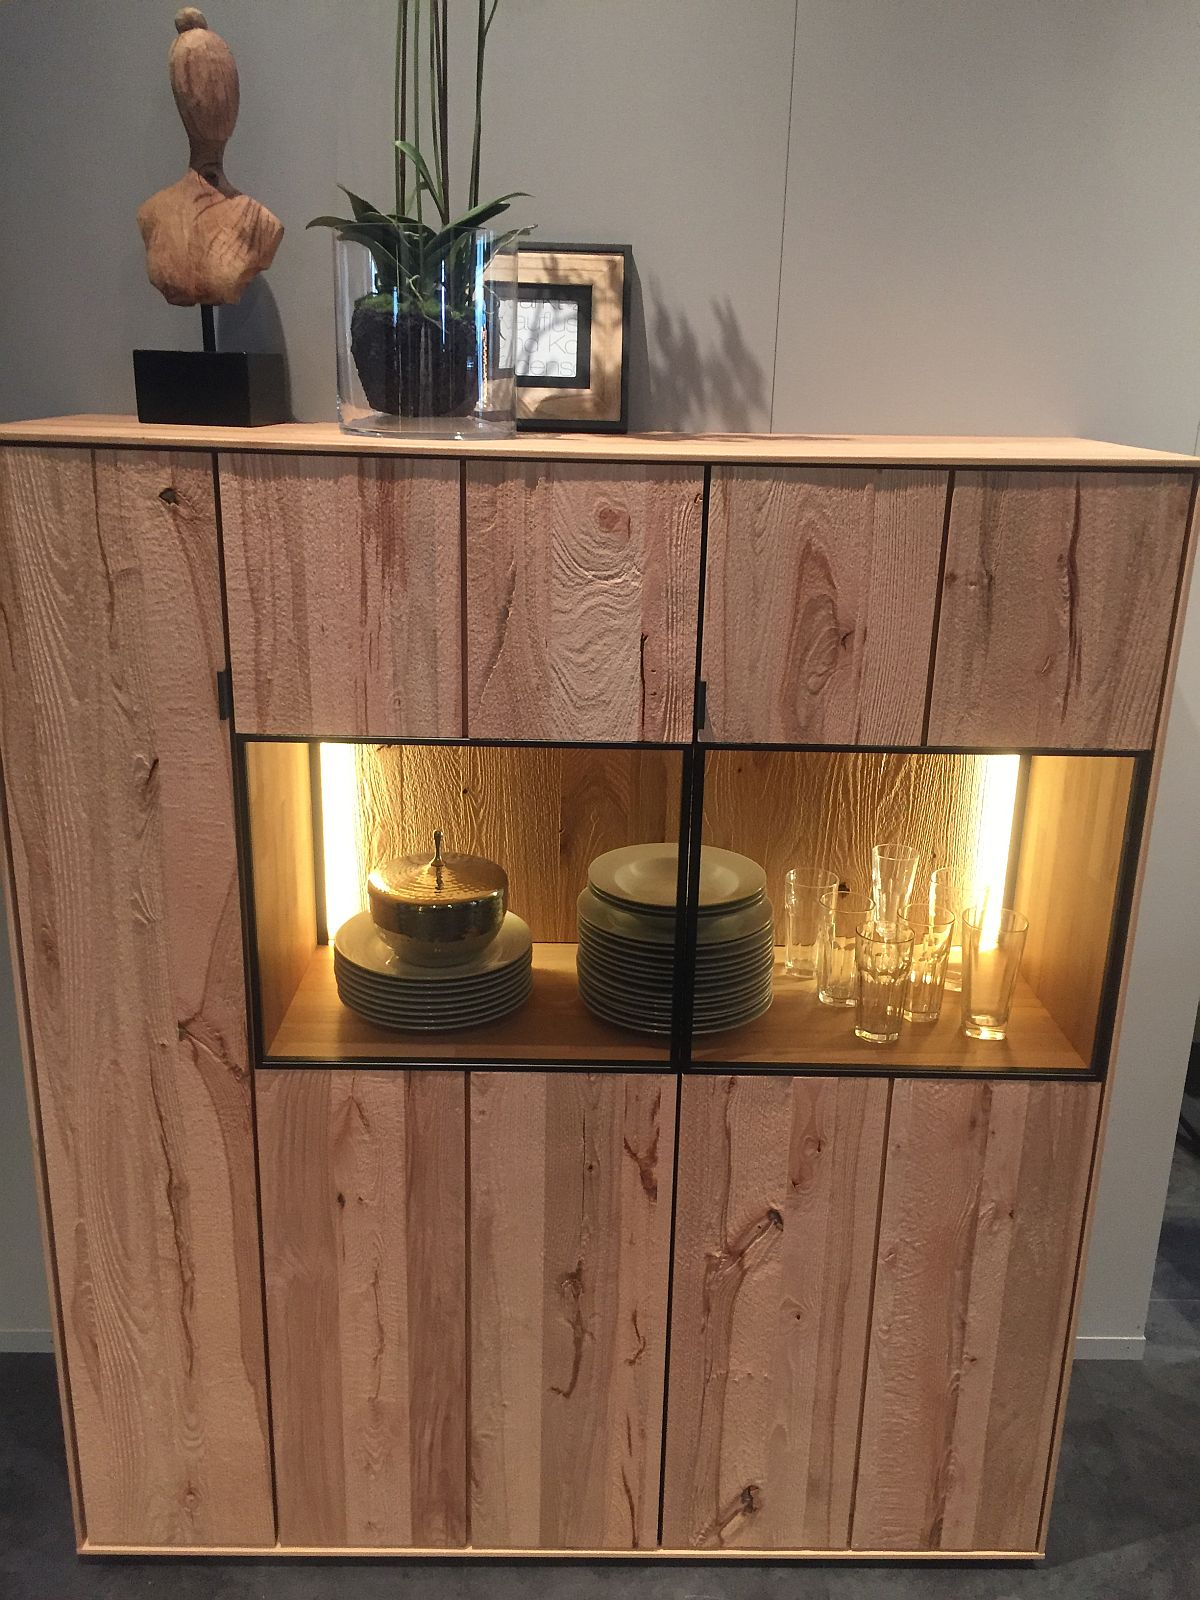 Ergonomic sideboard with in-built lighting and glass display zone